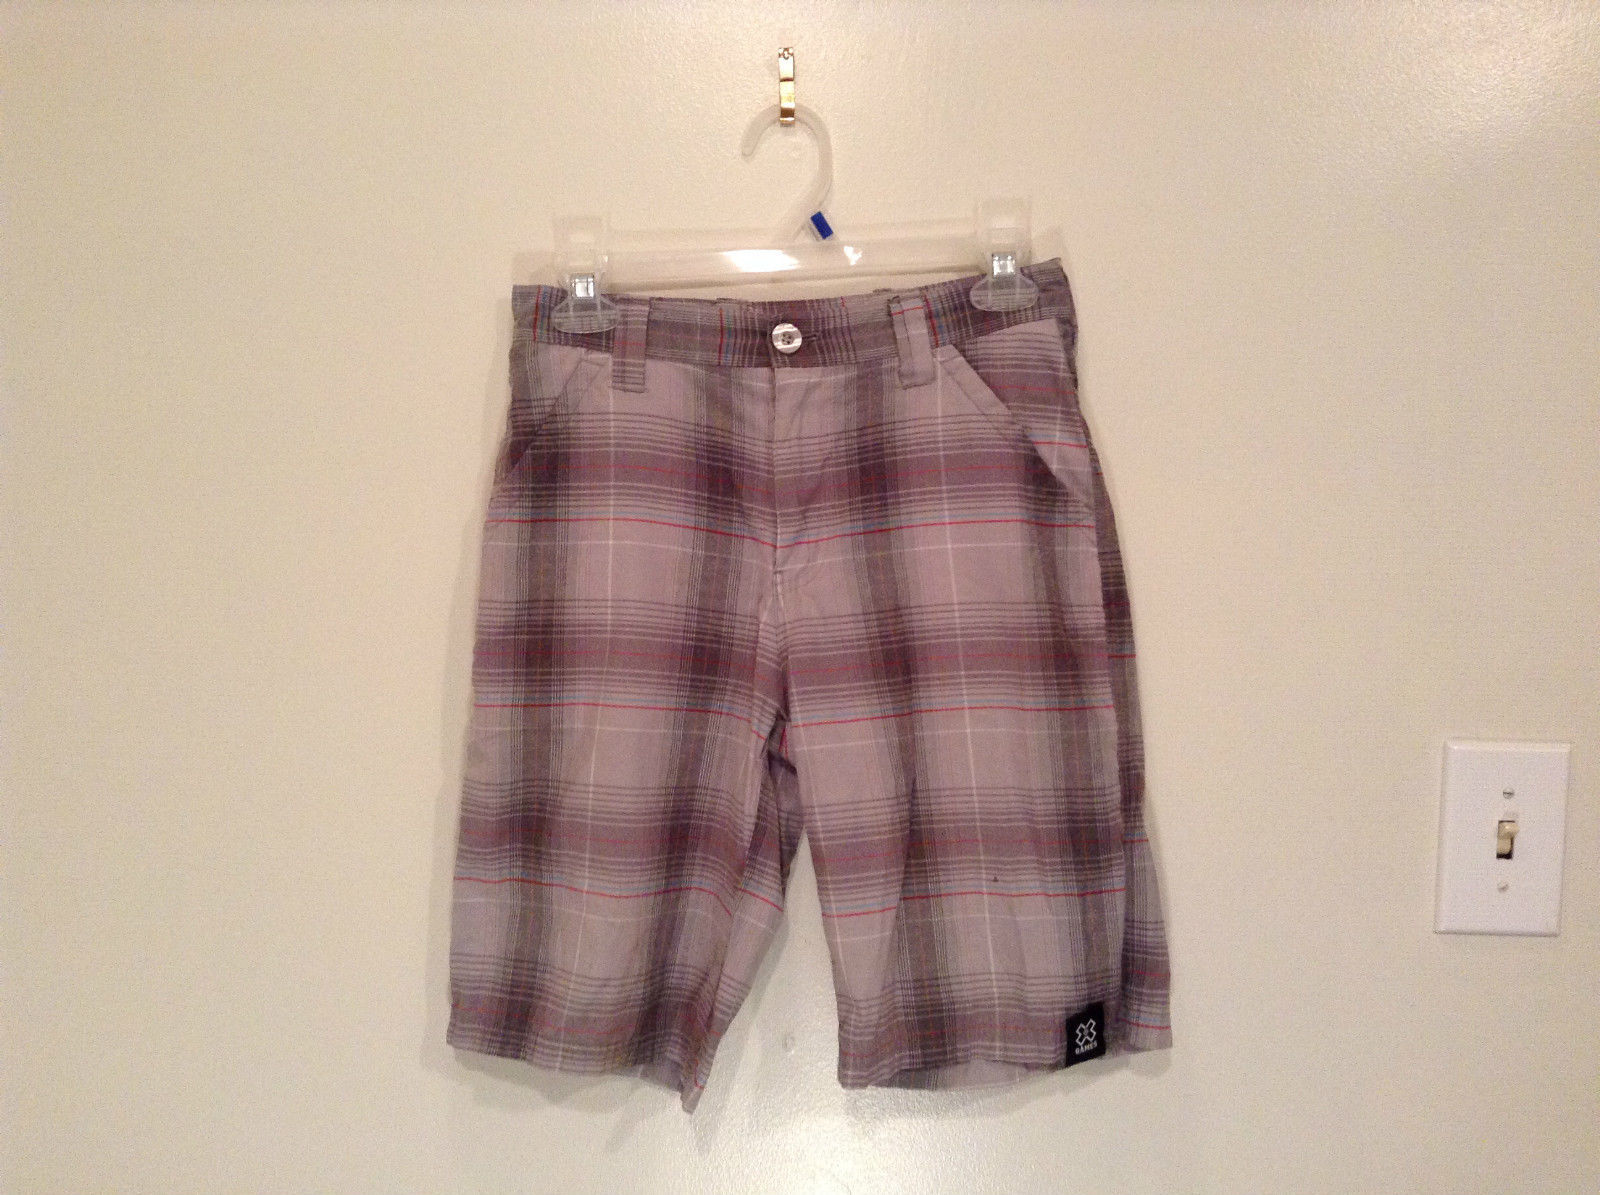 Gray Plaid Shorts by Games Size 12 Side and Back Pockets Button Zipper Closure